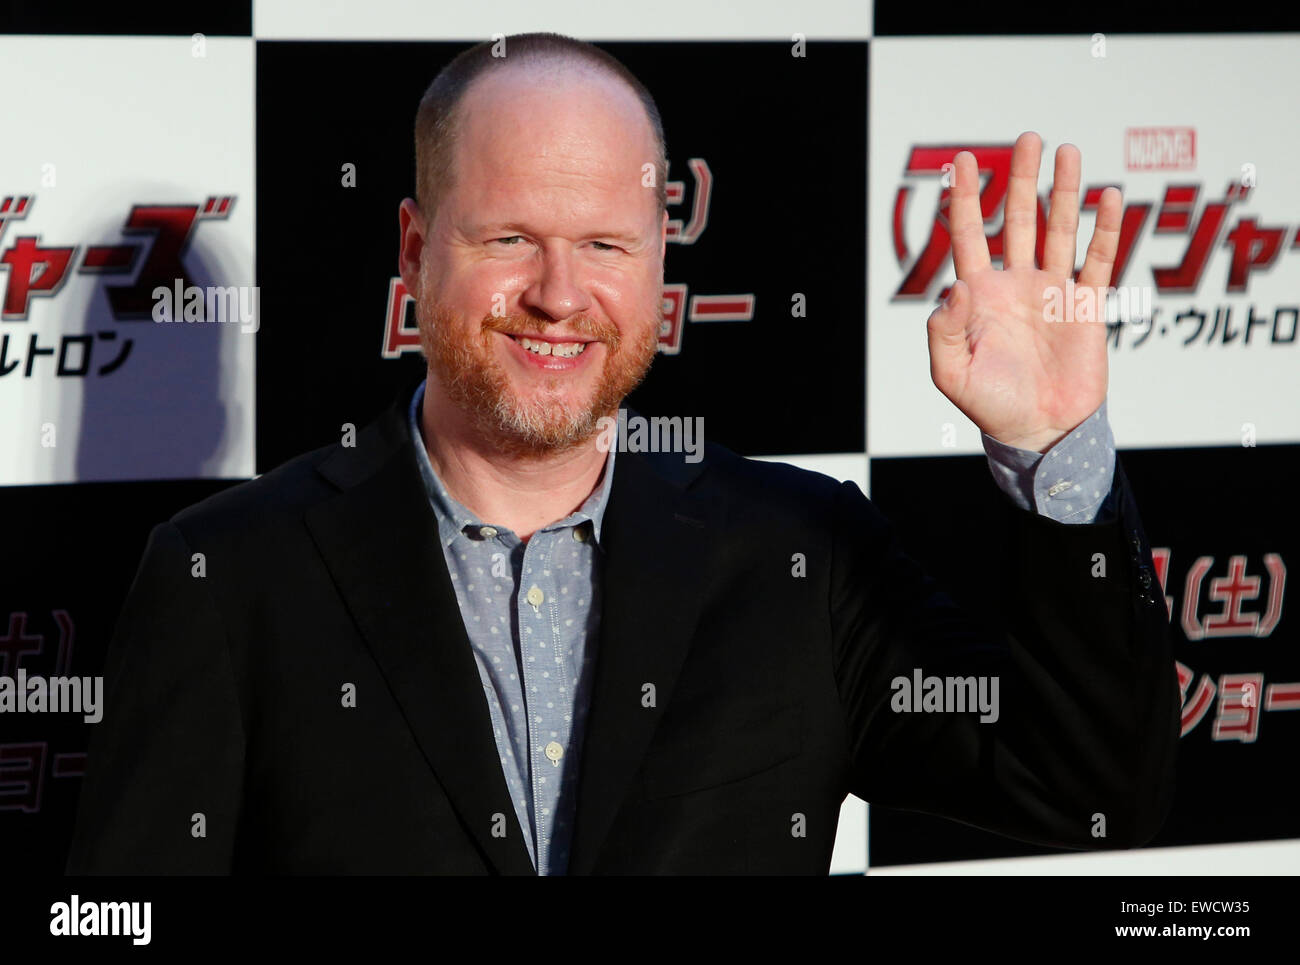 Tokyo, Japan. 23rd June, 2015. Film director Joss Whedon poses for photographers during a premiere event for his Stock Photo